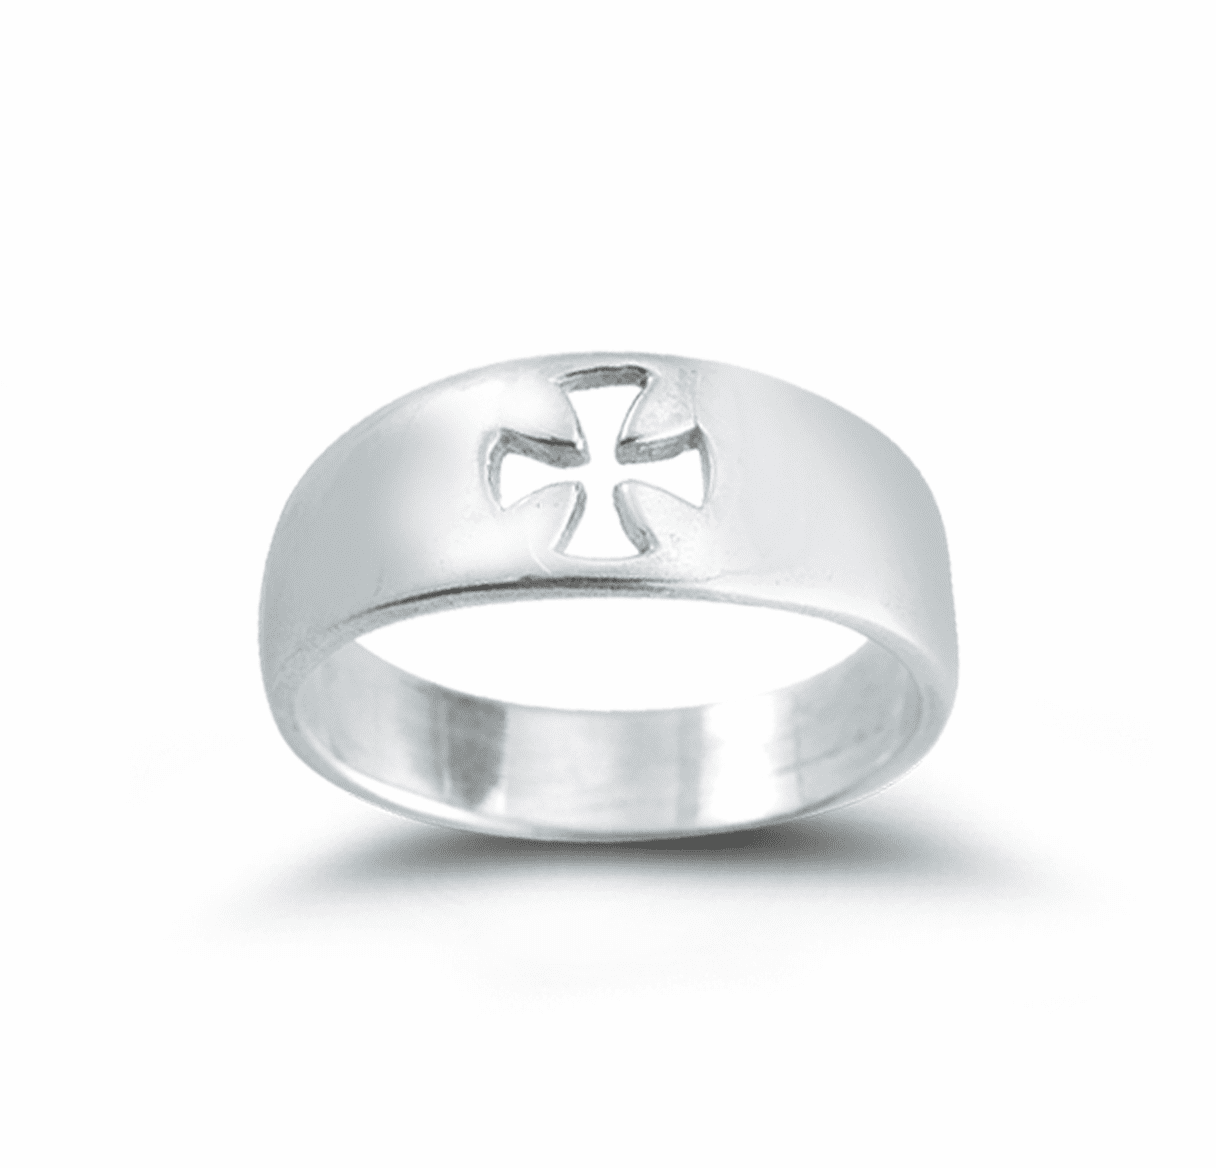 Sterling Silver Ring with Cross Cut Out by HMH Religious